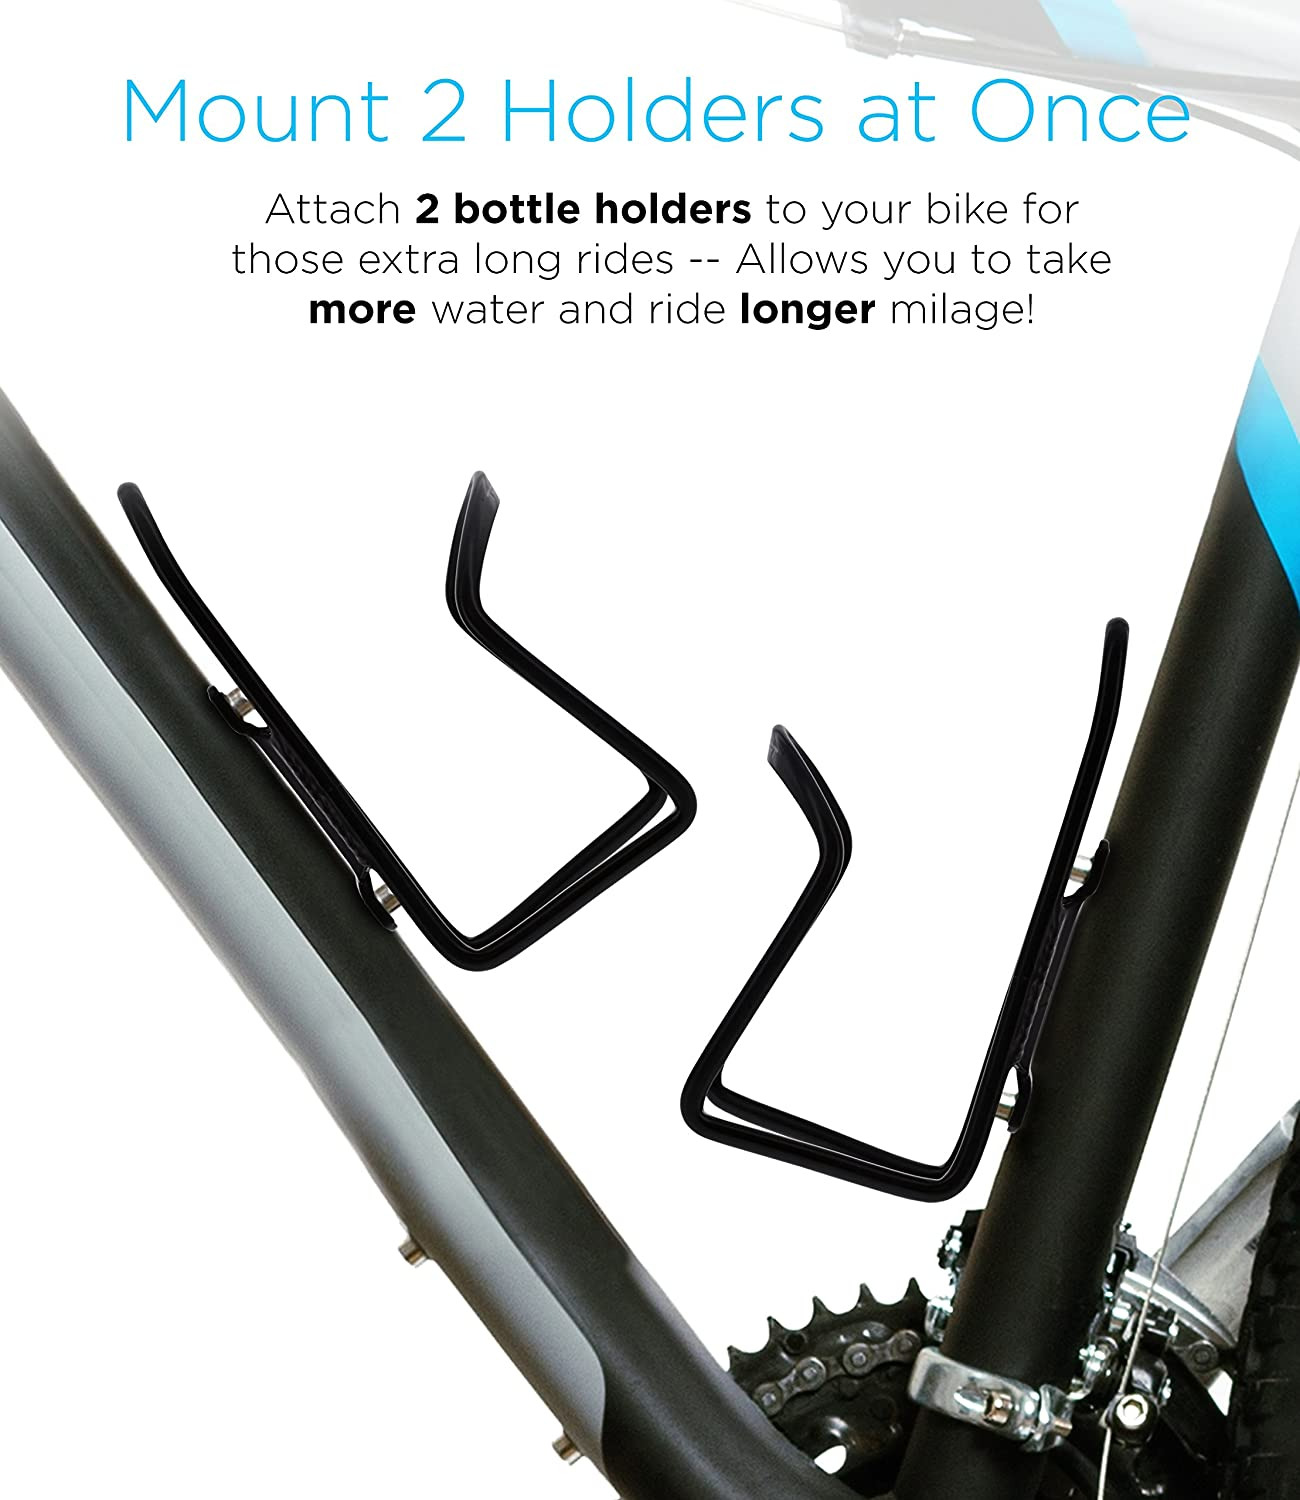 Bicycle Water Bottle Mount Lightweight for Cycling Fits Any Bike with Easy Installation S-ABC2PK-01 Aduro Bike Water Bottle Holder Aluminum Cage, 2X Pack